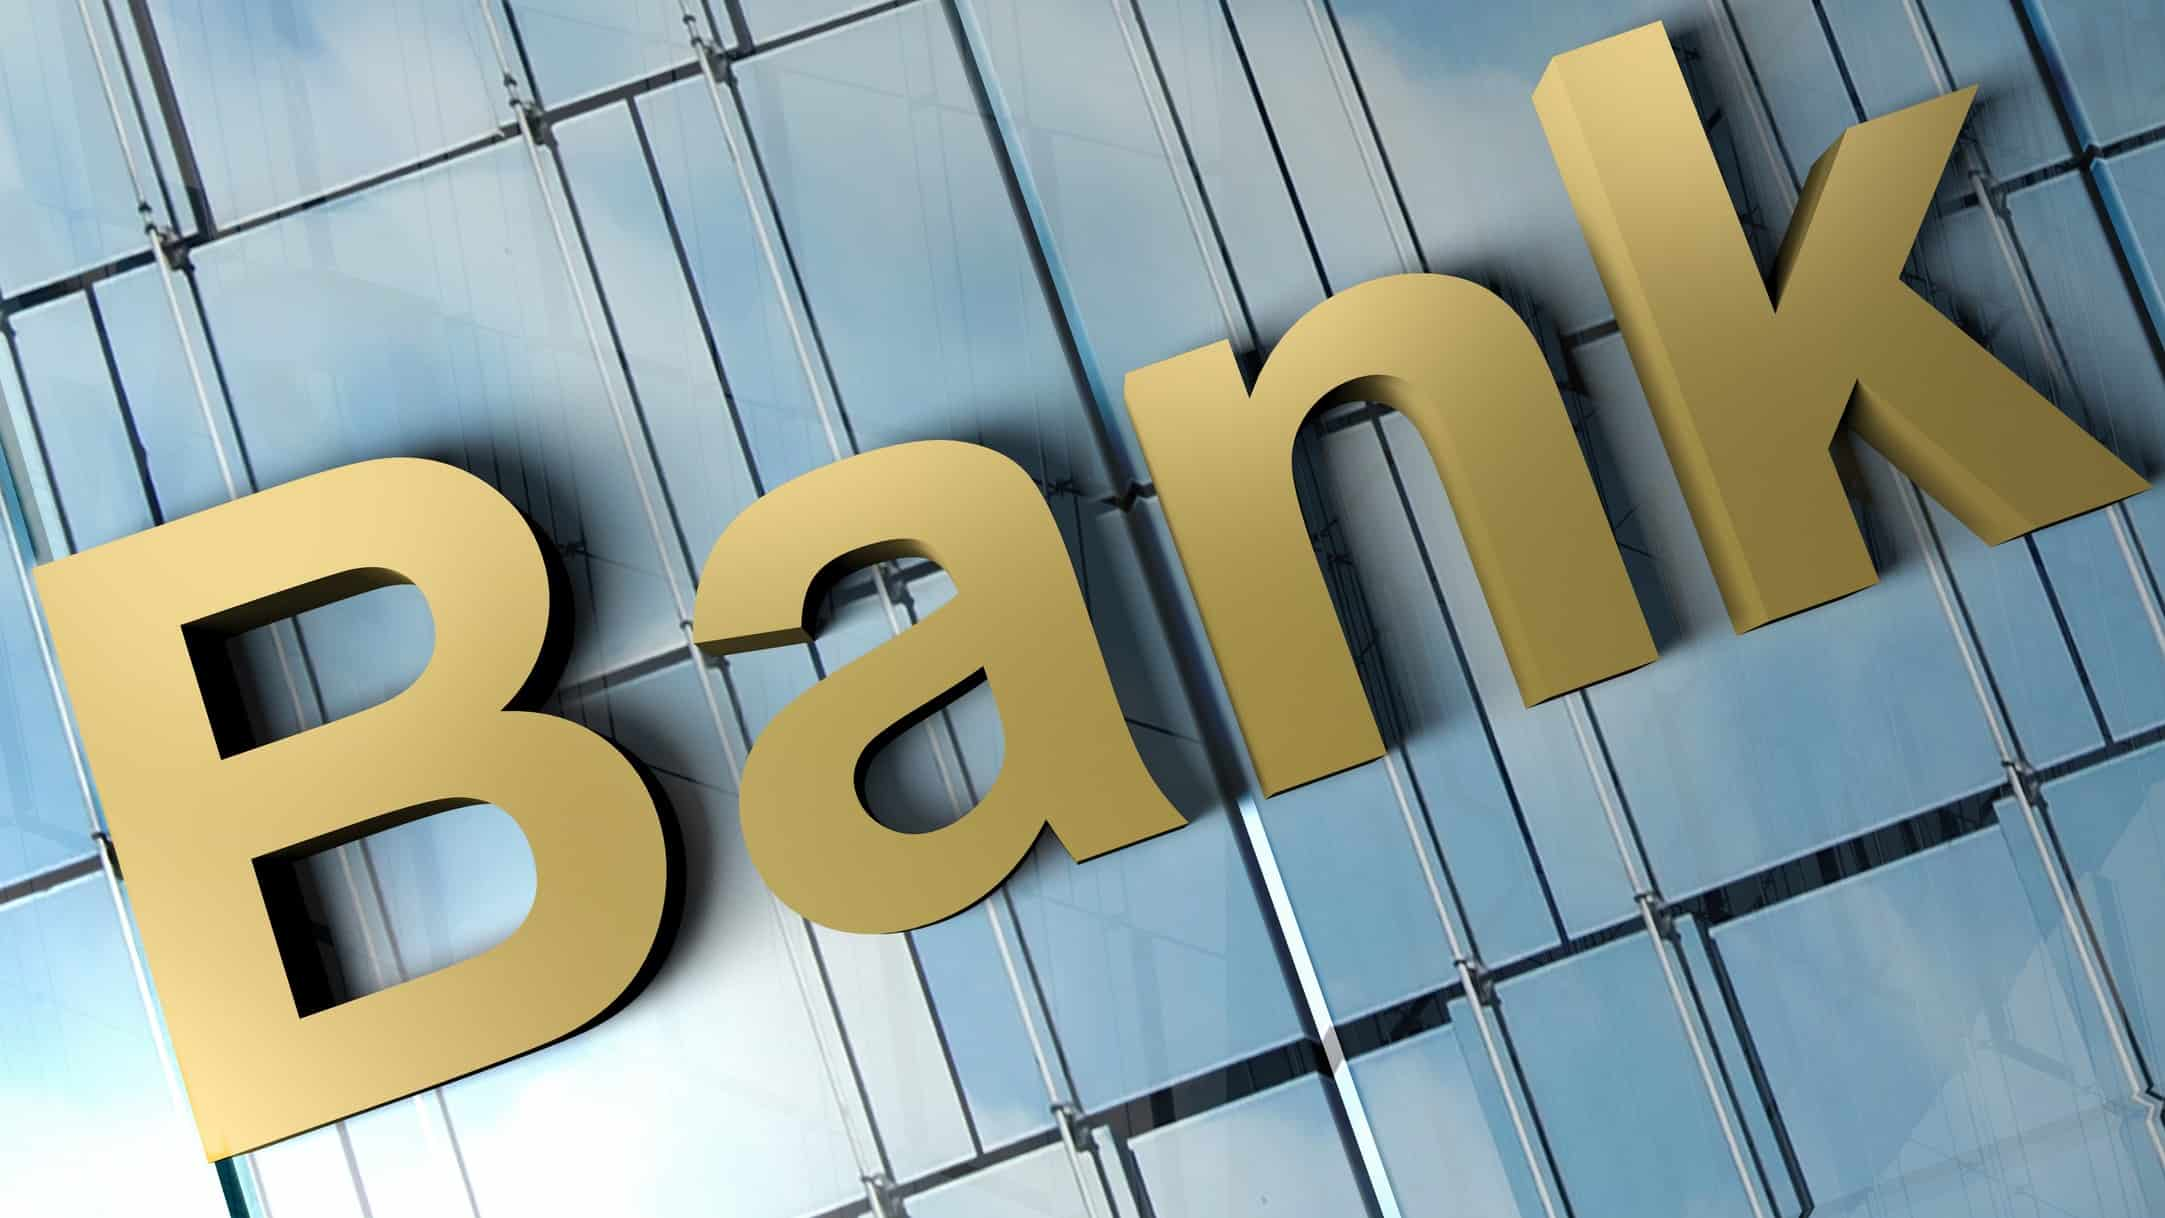 asx bank shares represented by large buidling with the word 'bank' on it